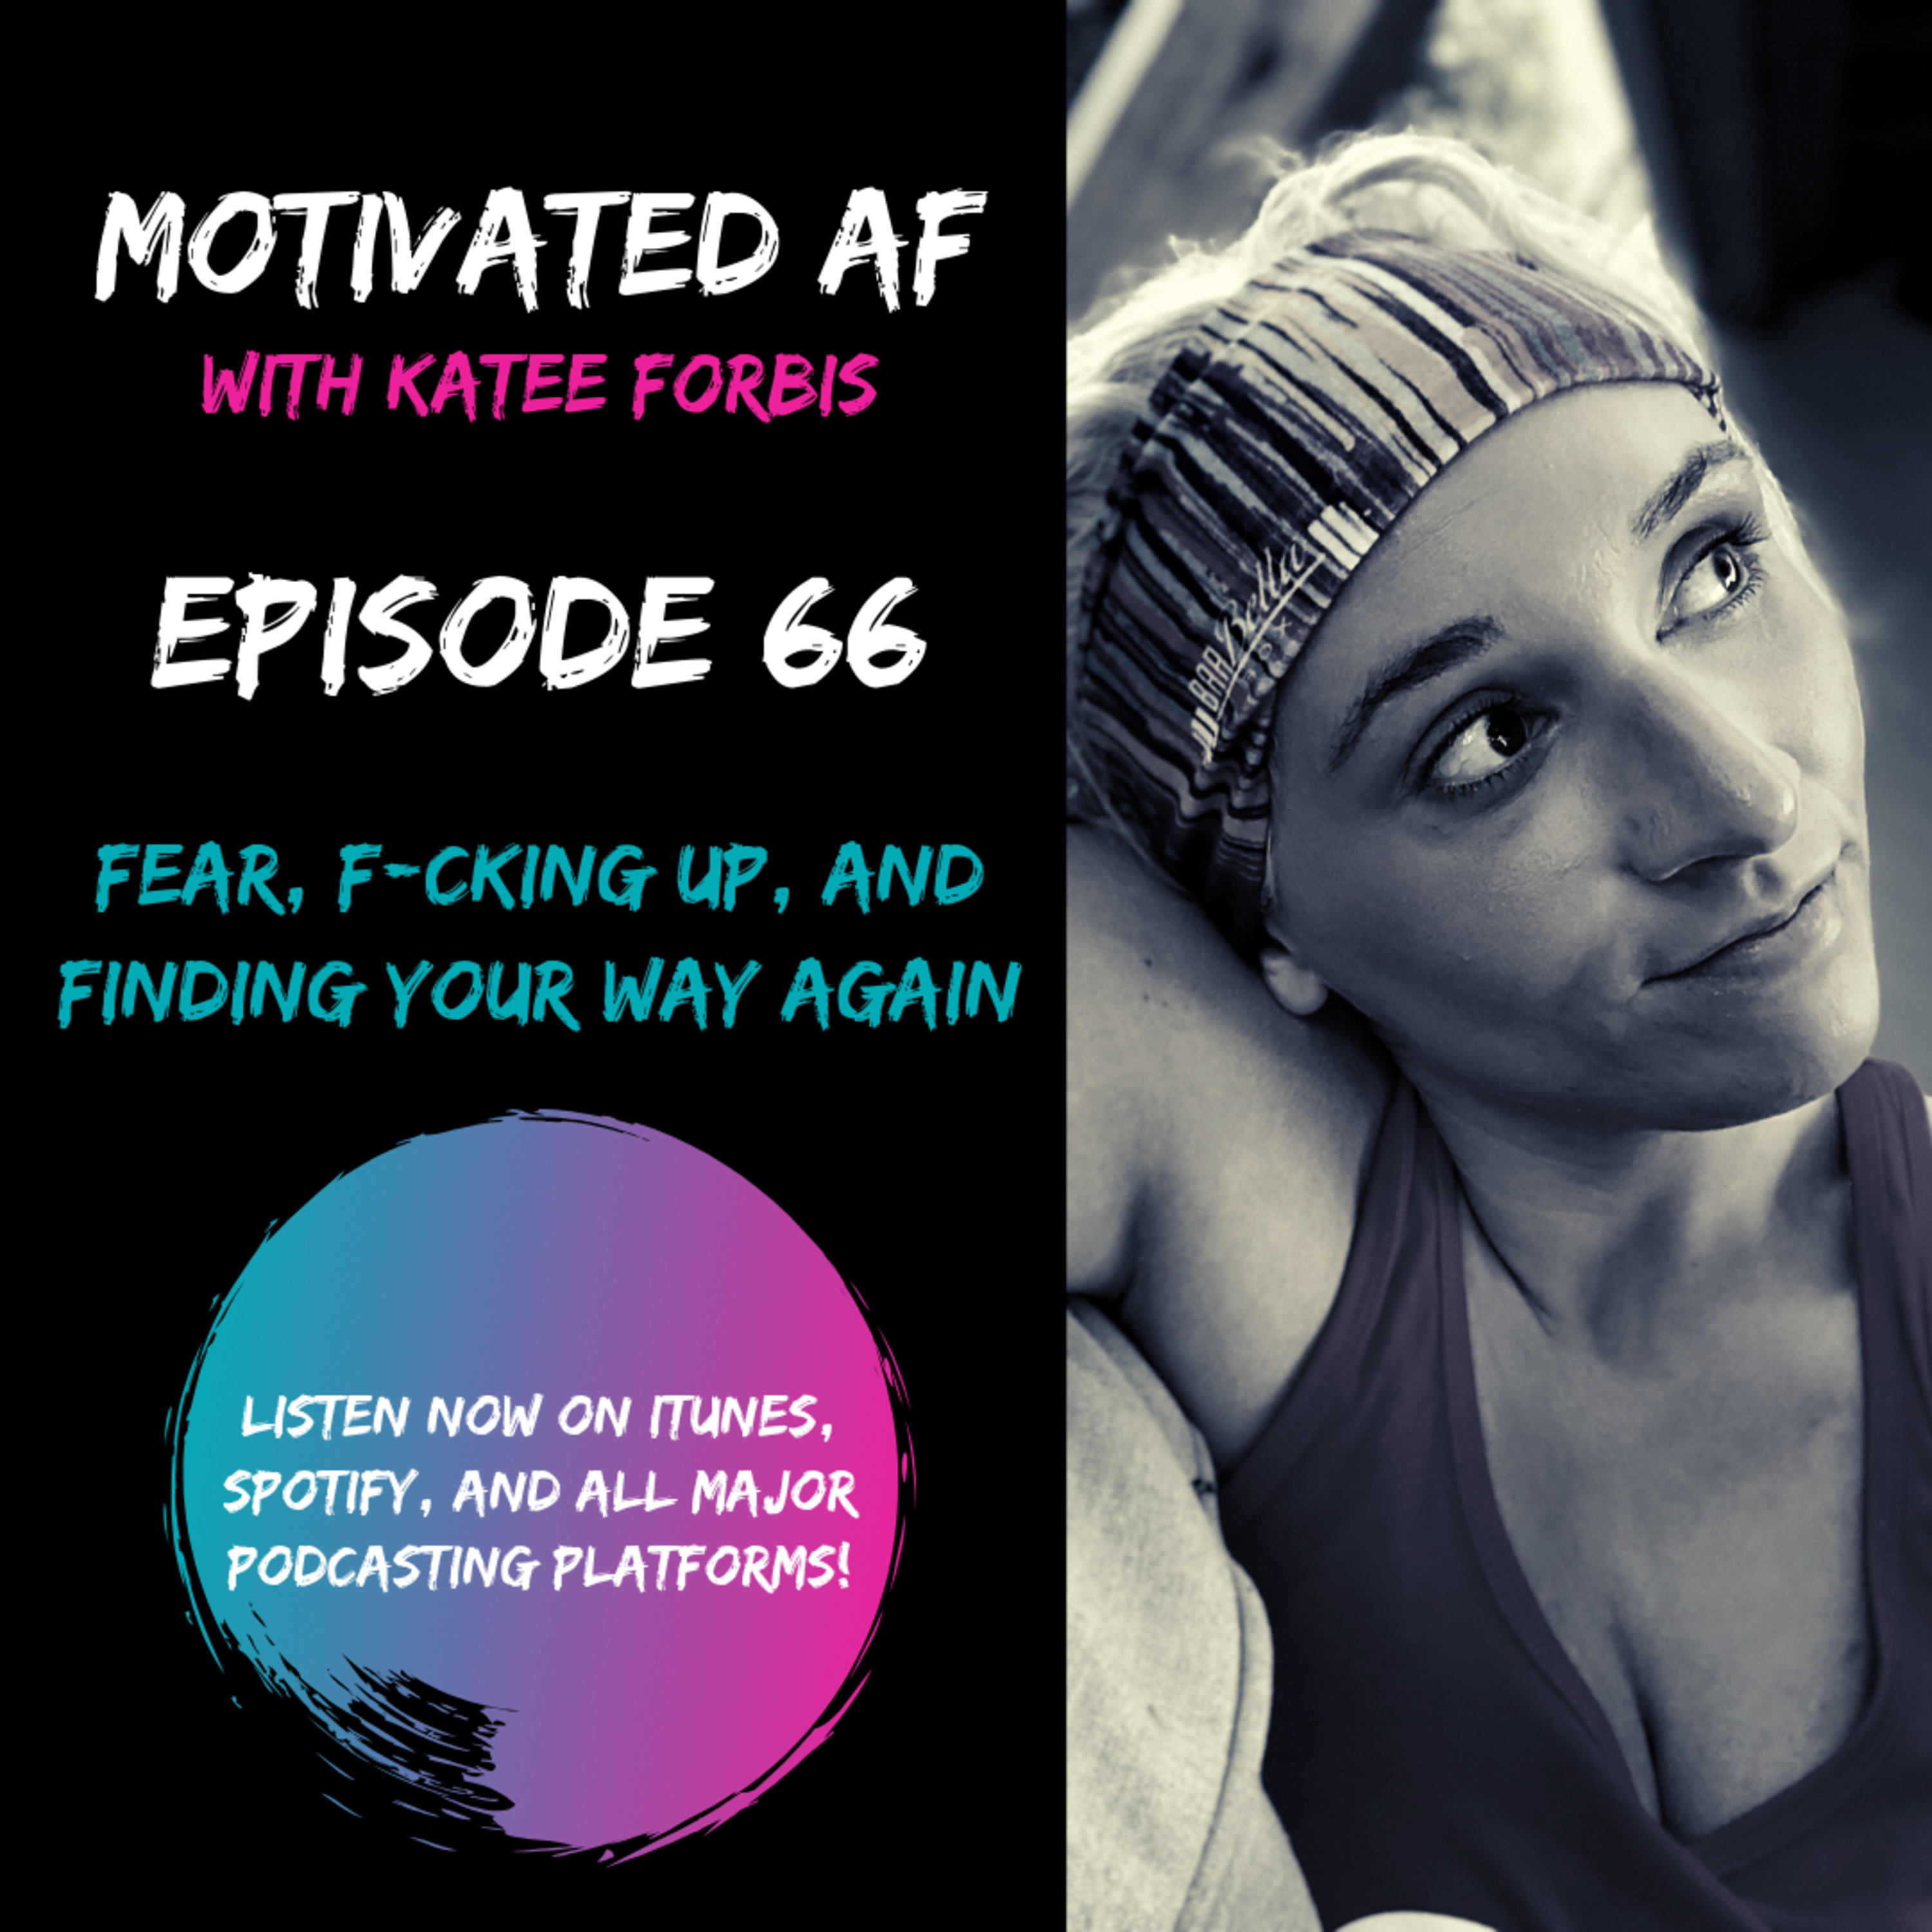 Ep. 66 - Fear, F*cking up, And Finding Your Way Again.